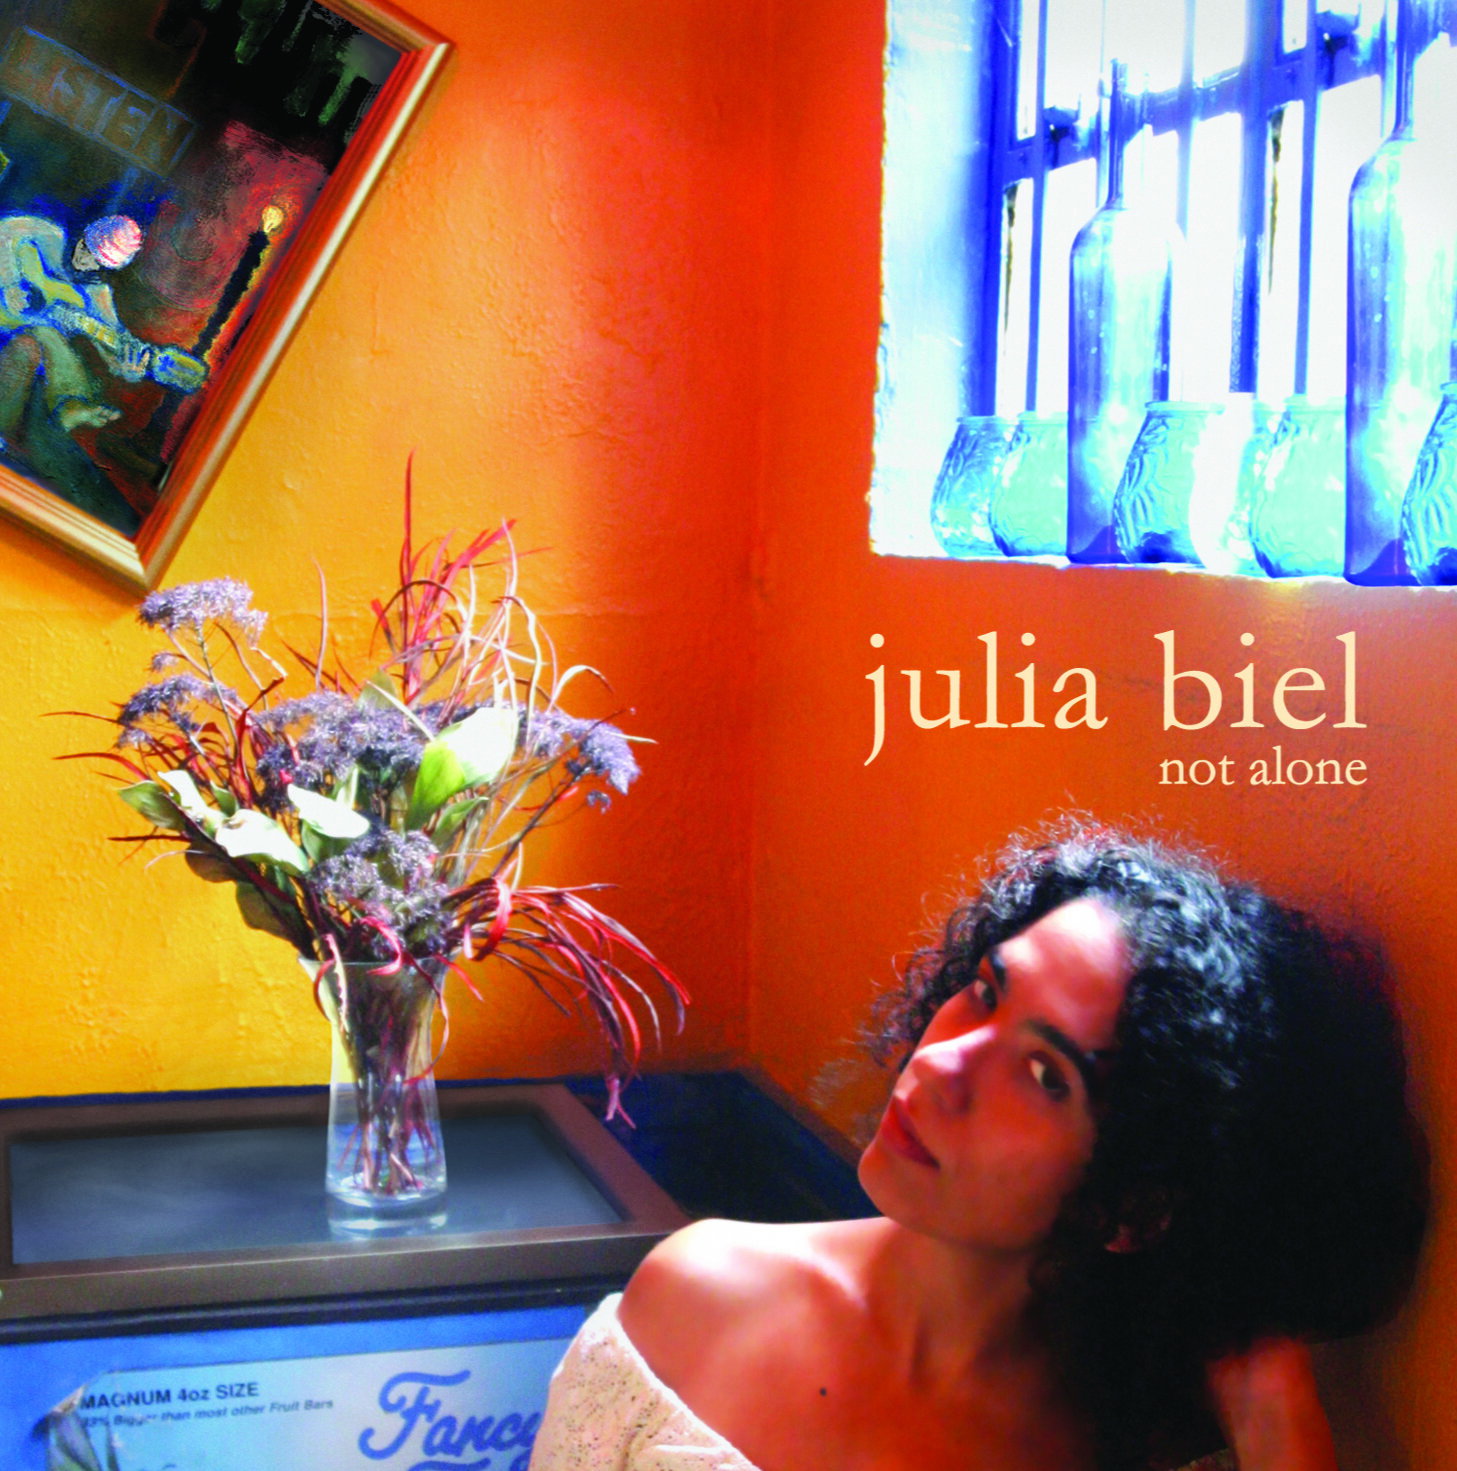 Not Alone, Julia Biel  album cover.jpg